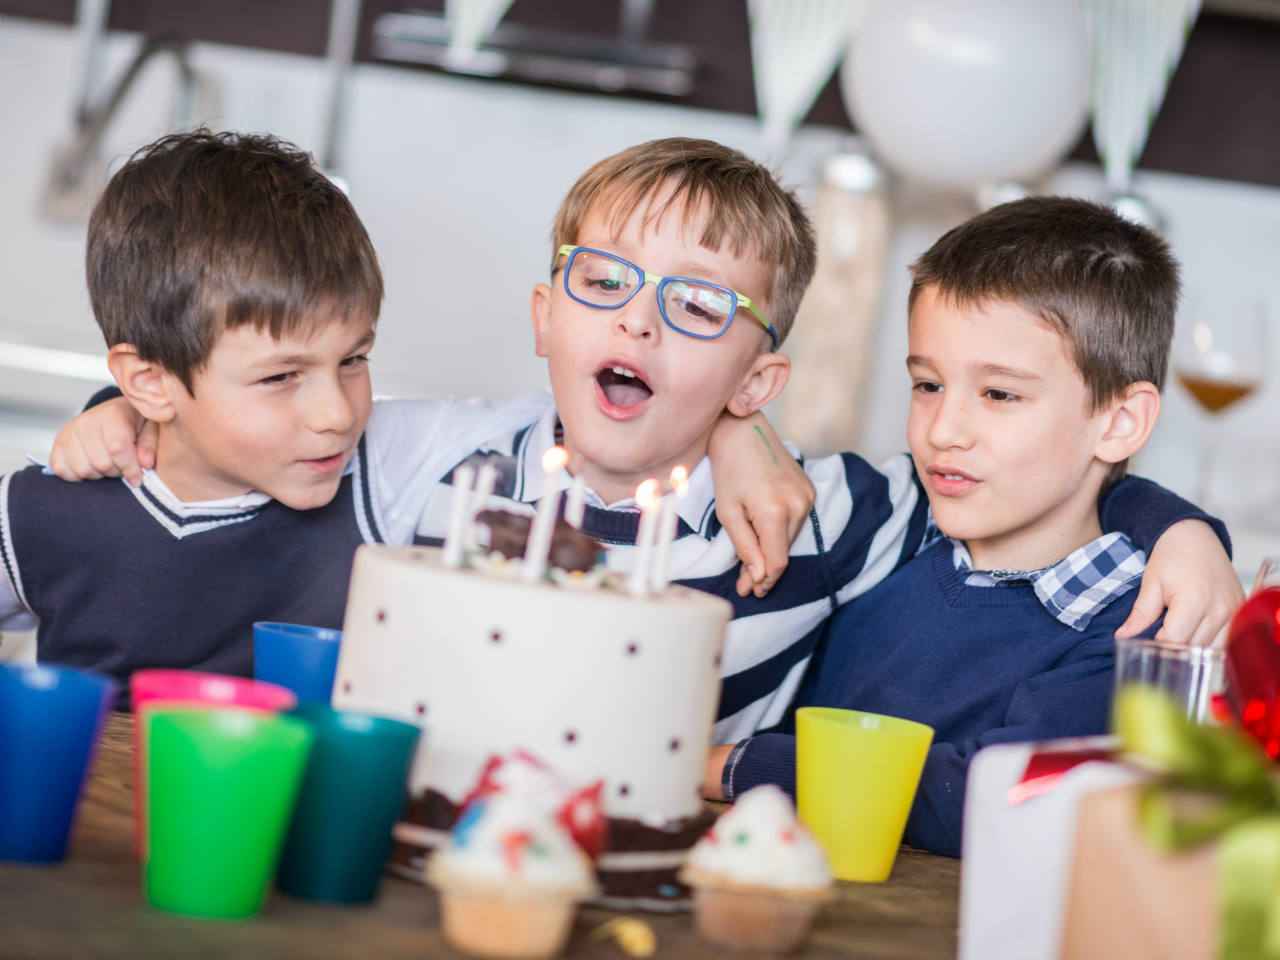 Three boys with a birthday cake at a birthday party